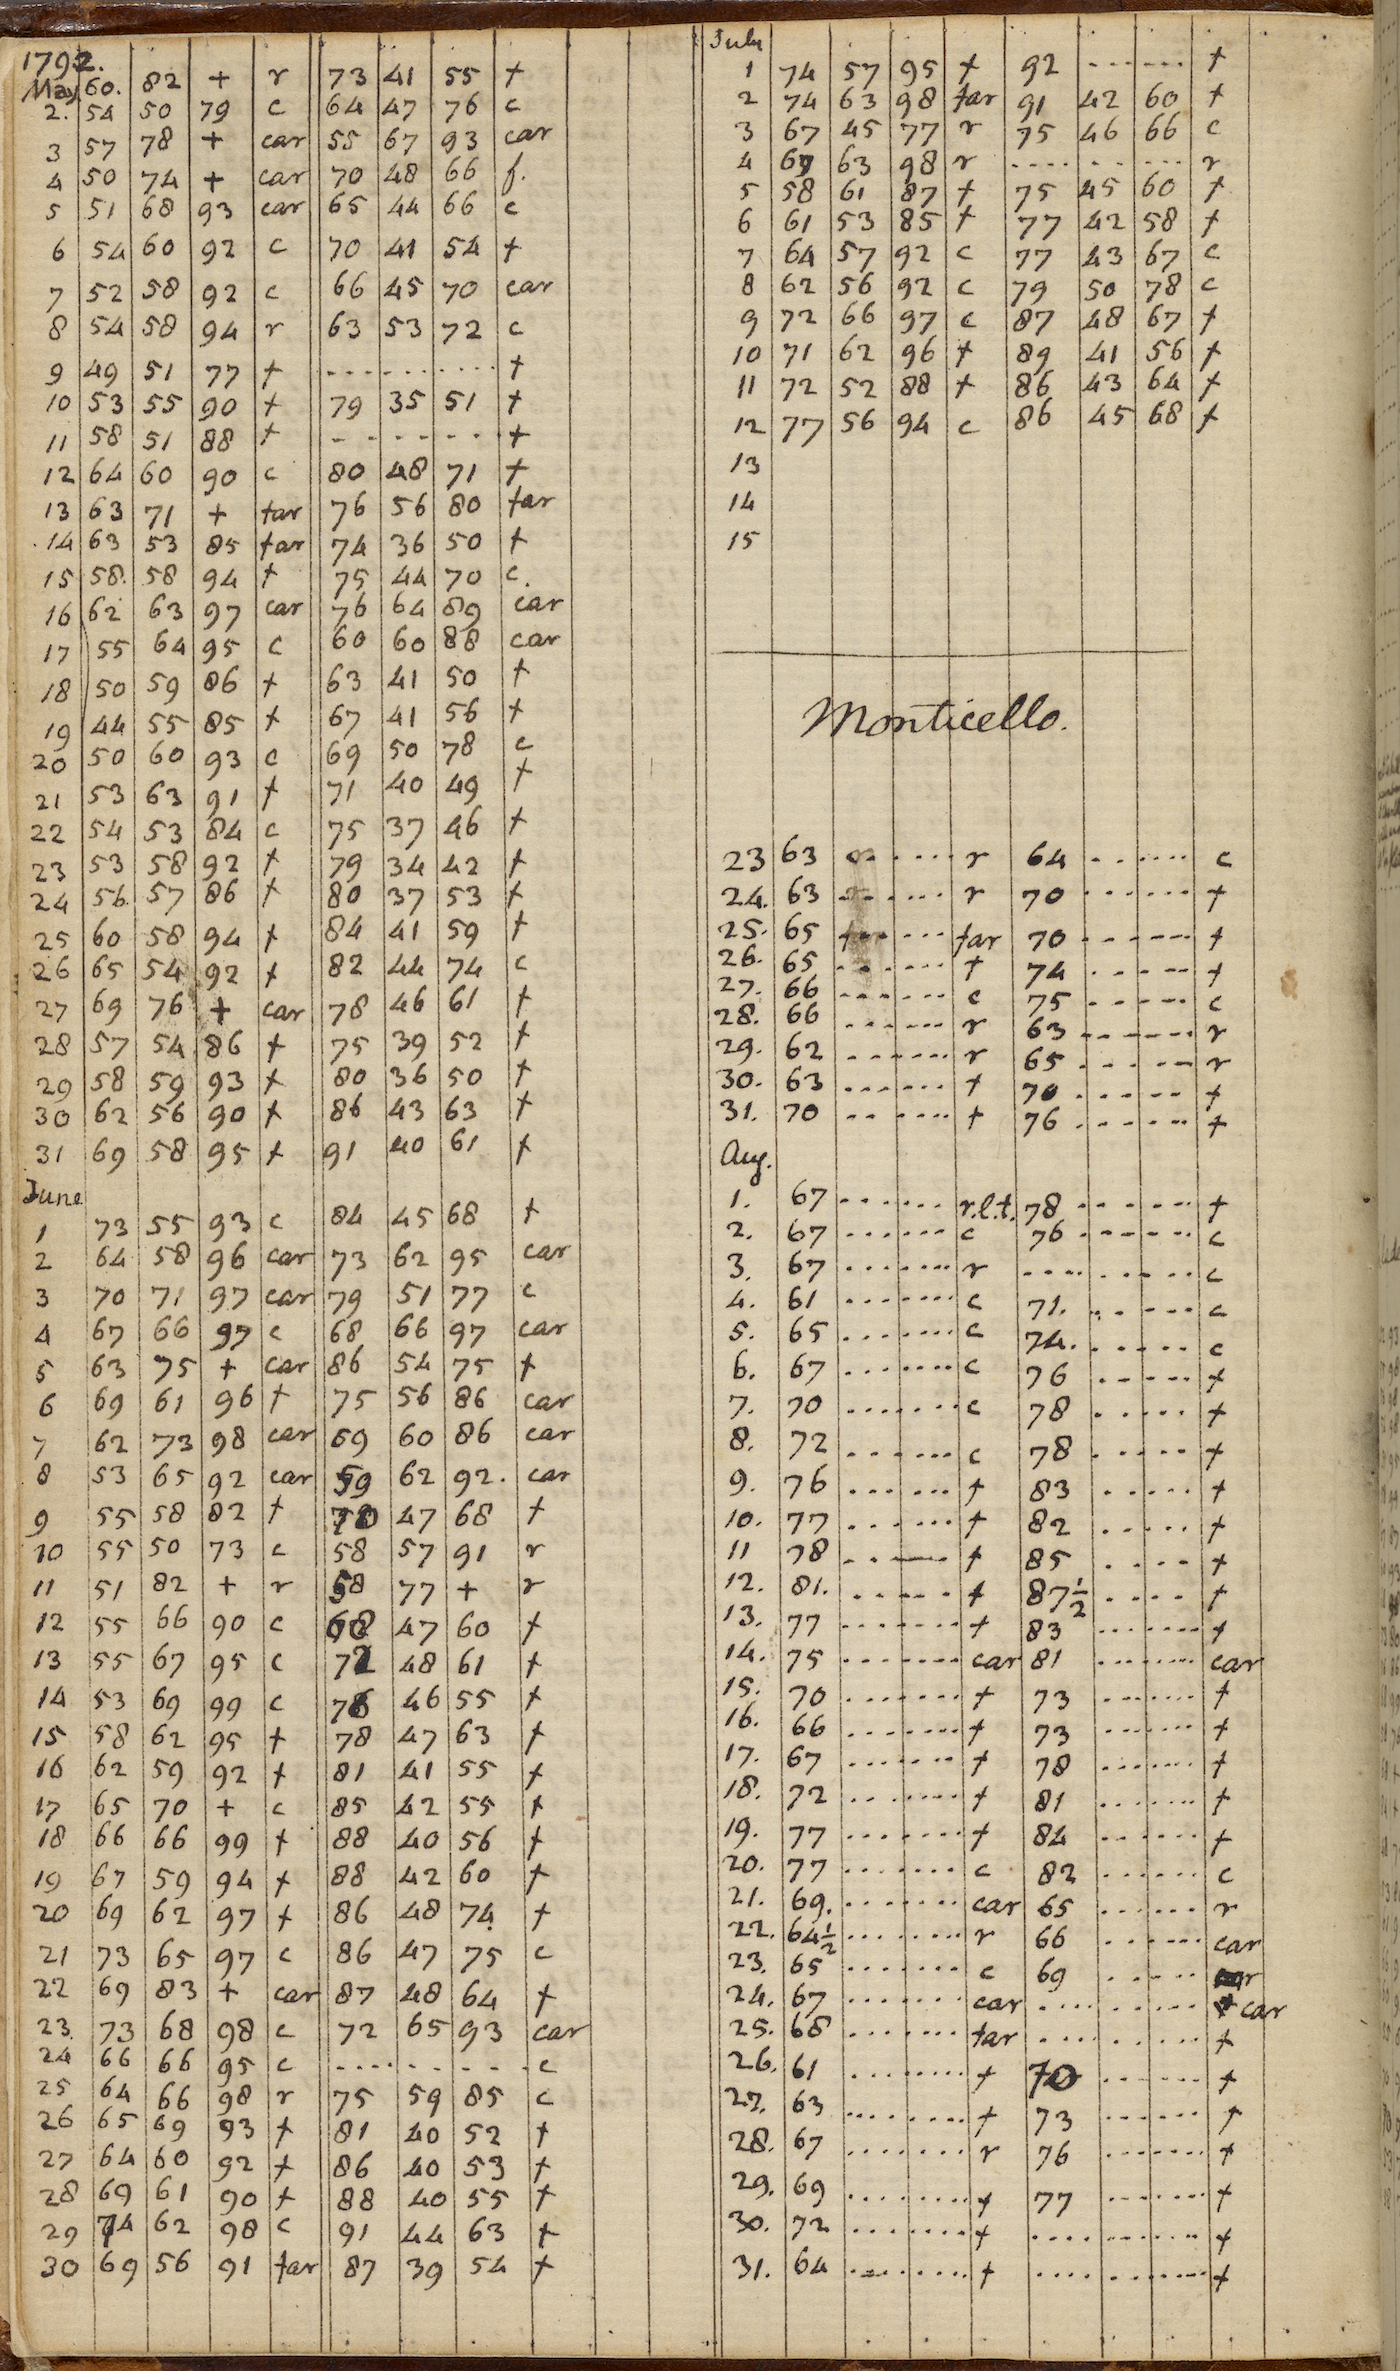 A notebook page with hand-drawn tables listing the temperature for May, June and July 1792. Part way through July a note indicates that subsequent recordings were taken at Monticello.